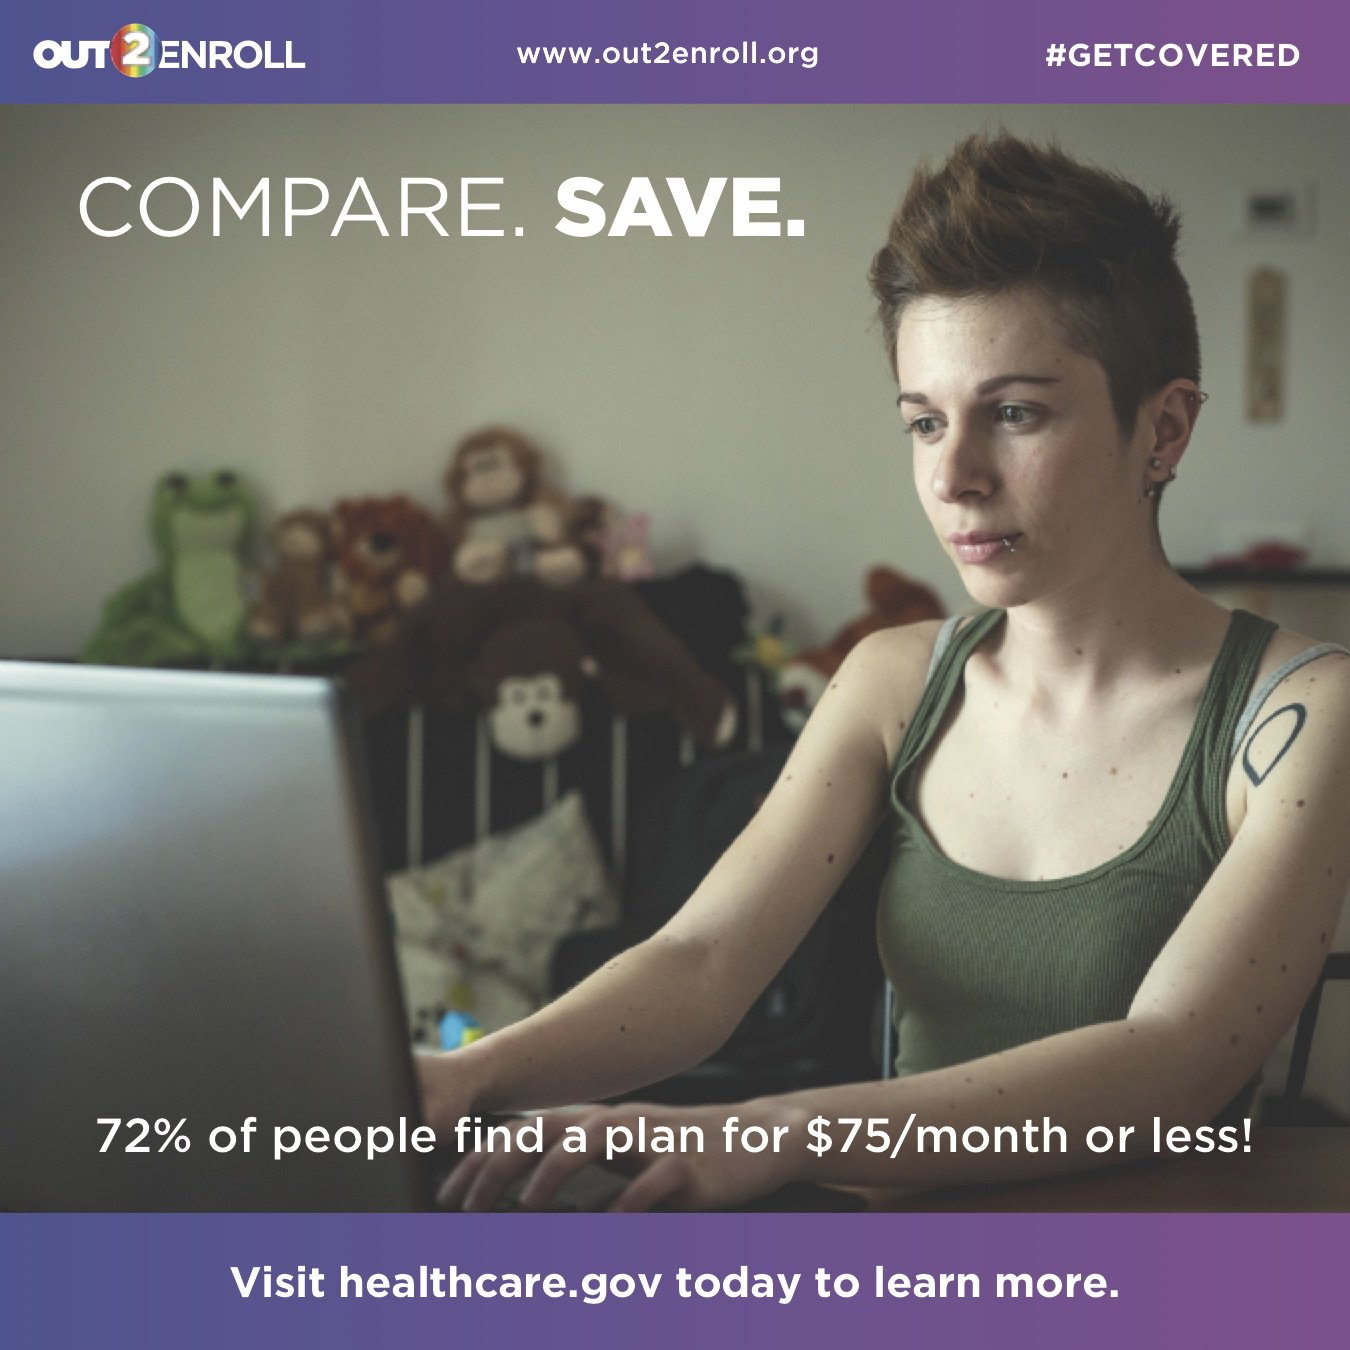 A2 When you shop, you save! On average comparing prices - https://t.co/iTEtGpoKw6 saves hundreds a year! #MillennialMon #thankfulforcoverage https://t.co/wruaWLKXiU